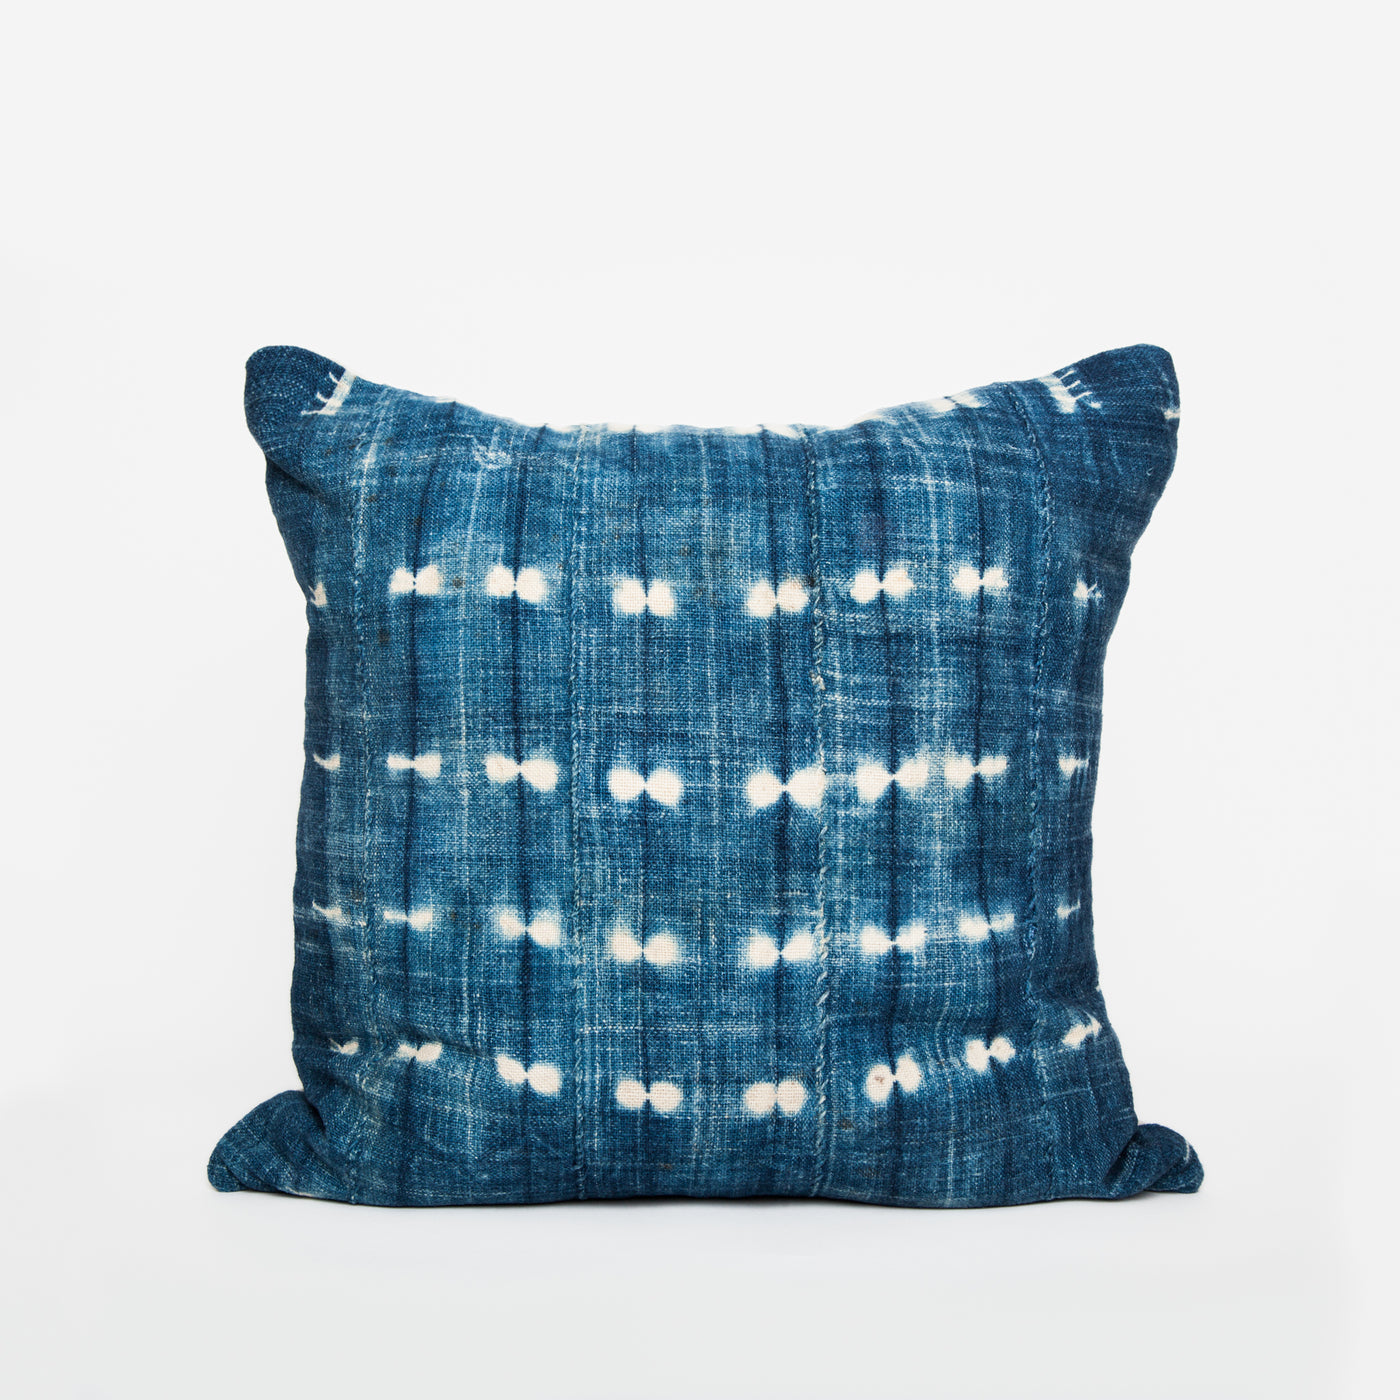 Hom & Co | coussin mudcloth vintage indigo | vitage mudcloth pillow blue boho home decor